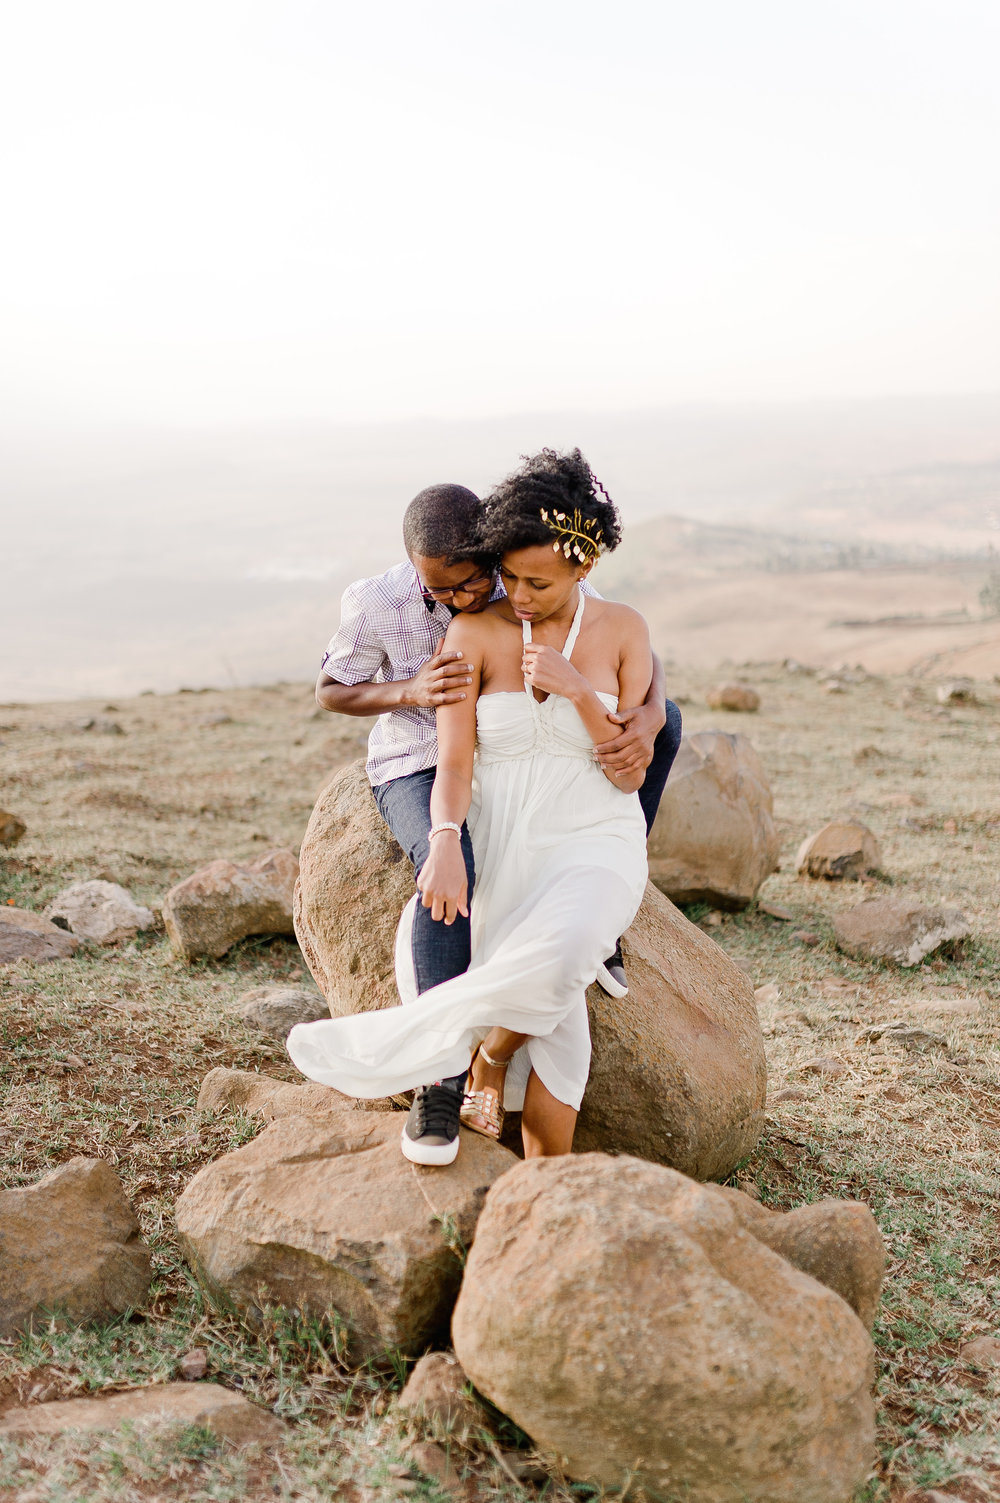 Anna-Hari-Photography-Kenyan-Wedding-Photographer-Ngong-Hills-Elopement-Kenya-47.jpg